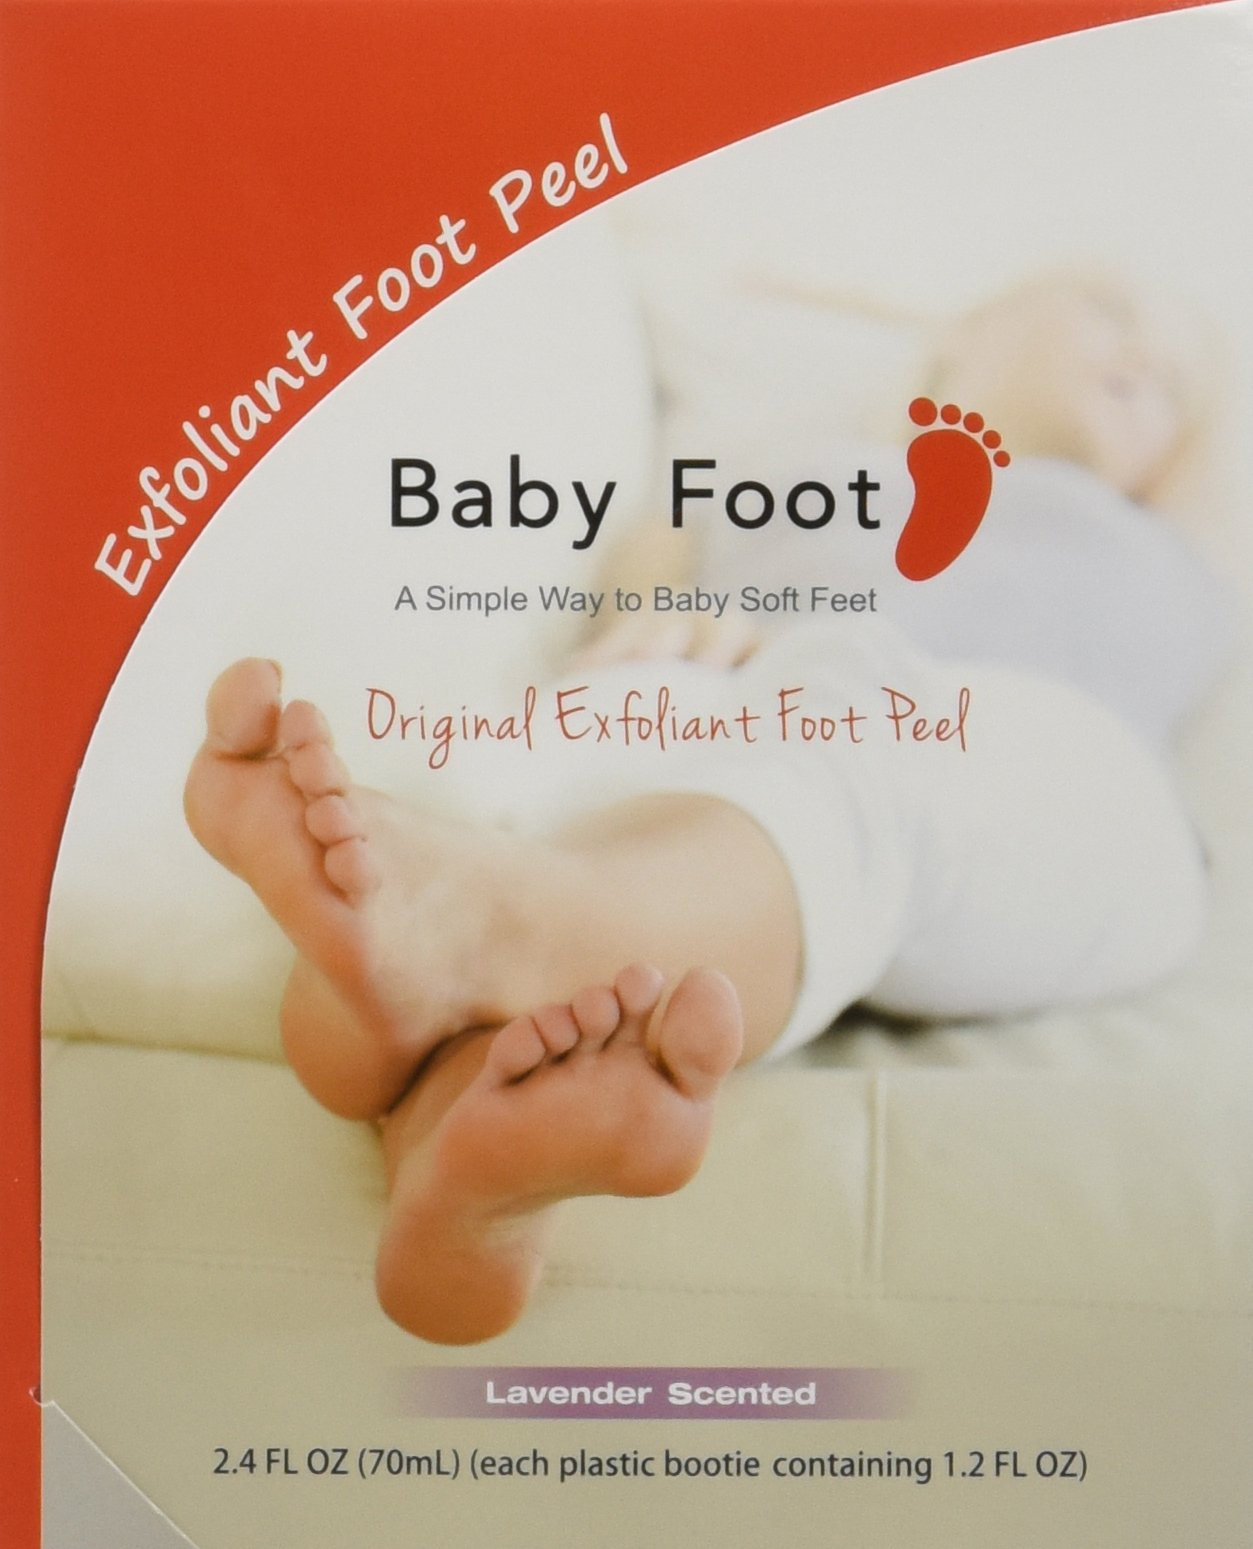 Baby Foot Original Deep Exfoliation for Feet Peel(2 count)Pack of 2